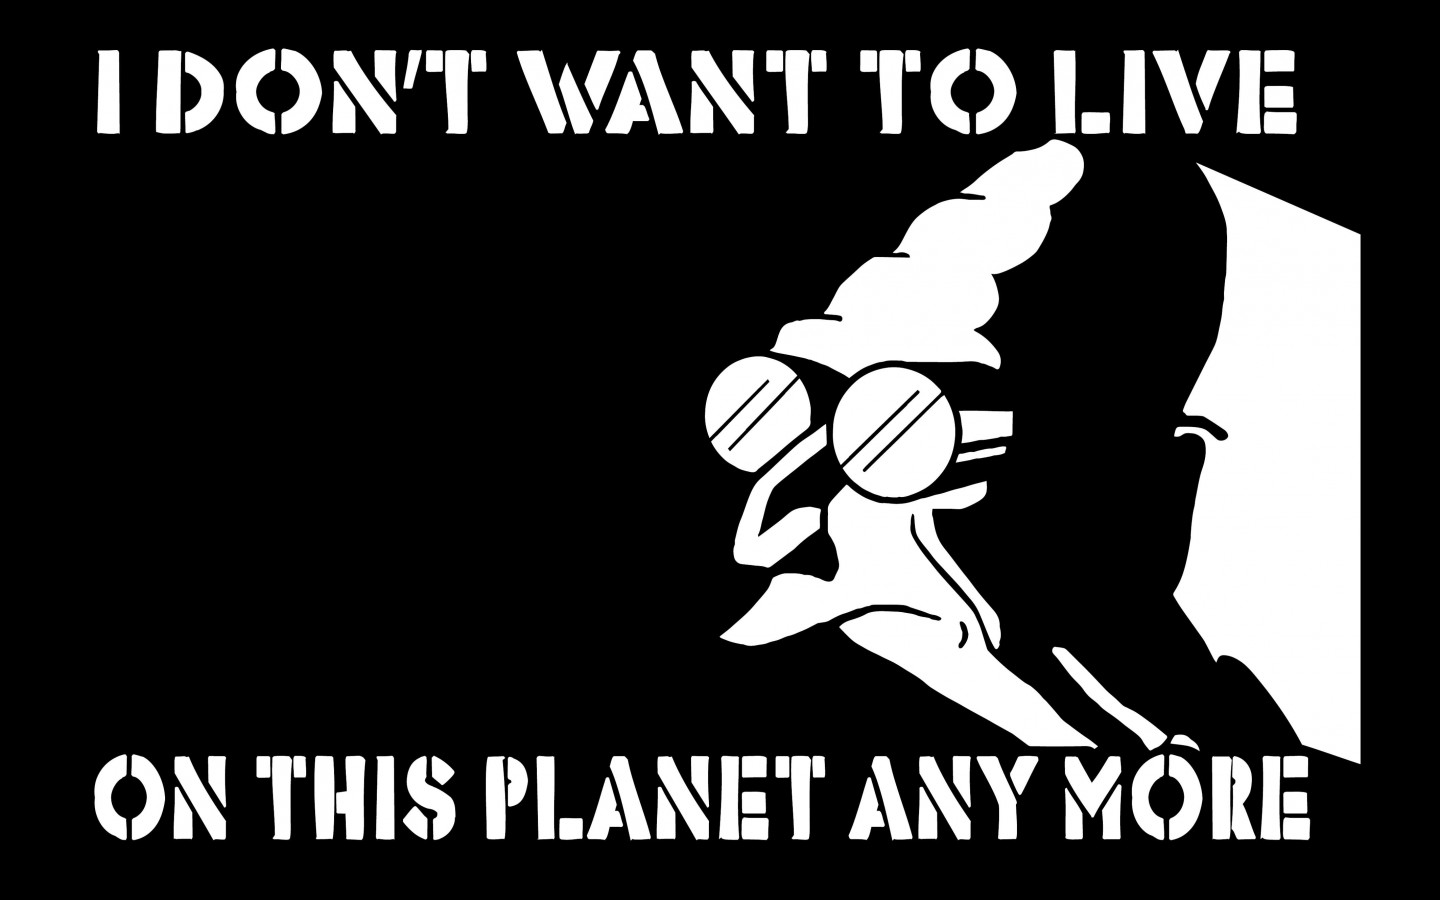 I Don't Want to Live on This Planet Anymore Wallpaper for Desktop 1440x900